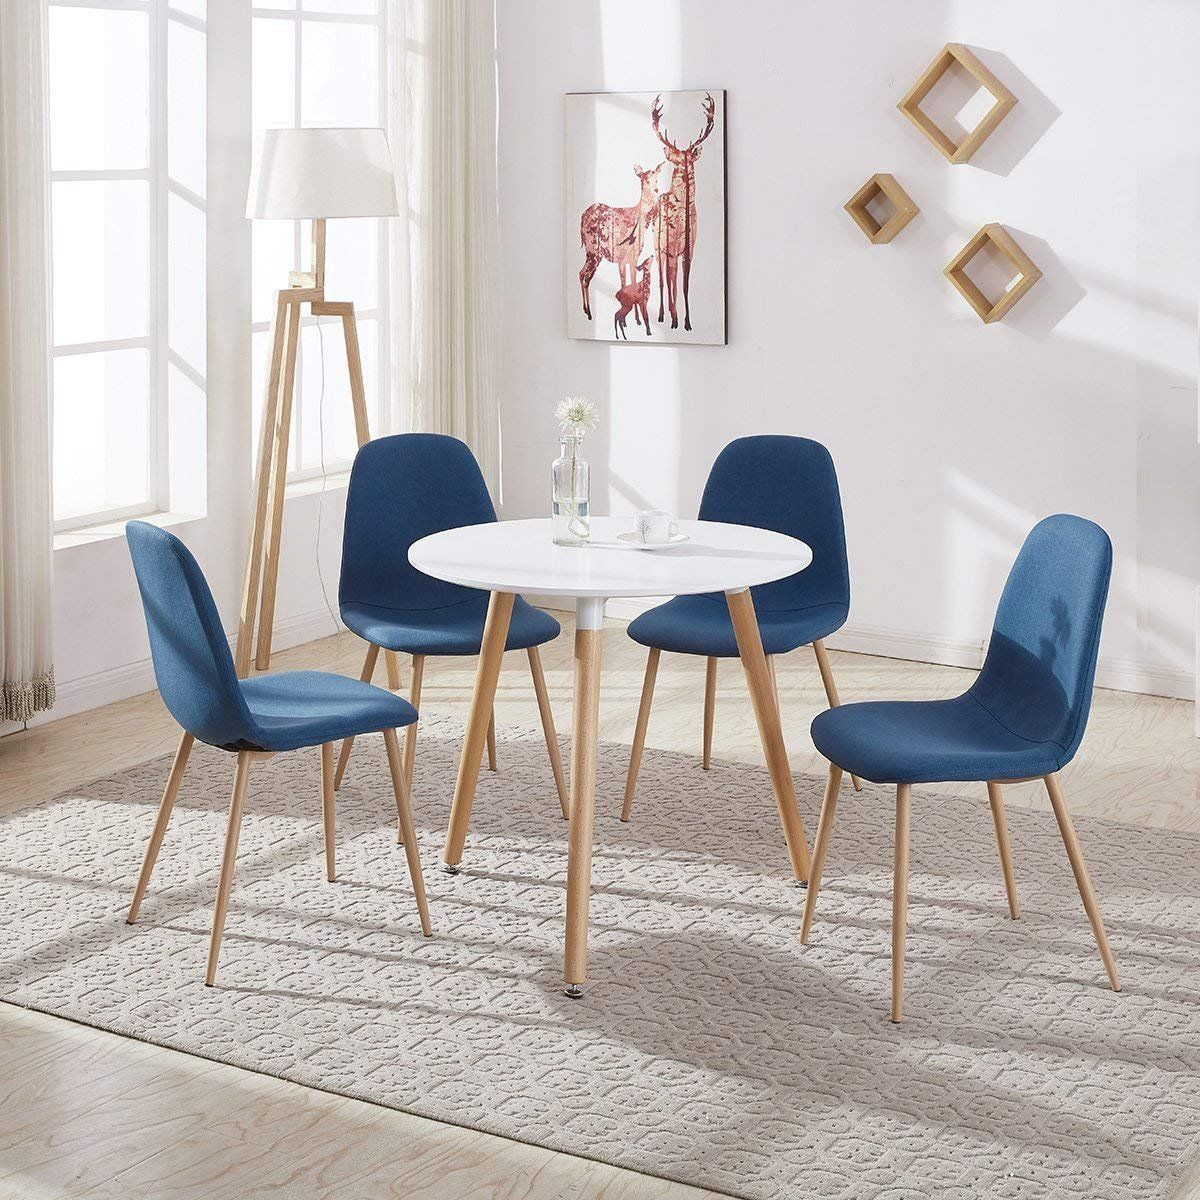 f02f8c66a804 GreenForest Dining Table White Modern Round Table with Wood Legs for Kitchen  Living Room Leisure Coffee Table Office Coference Desk     Check out the  image ...